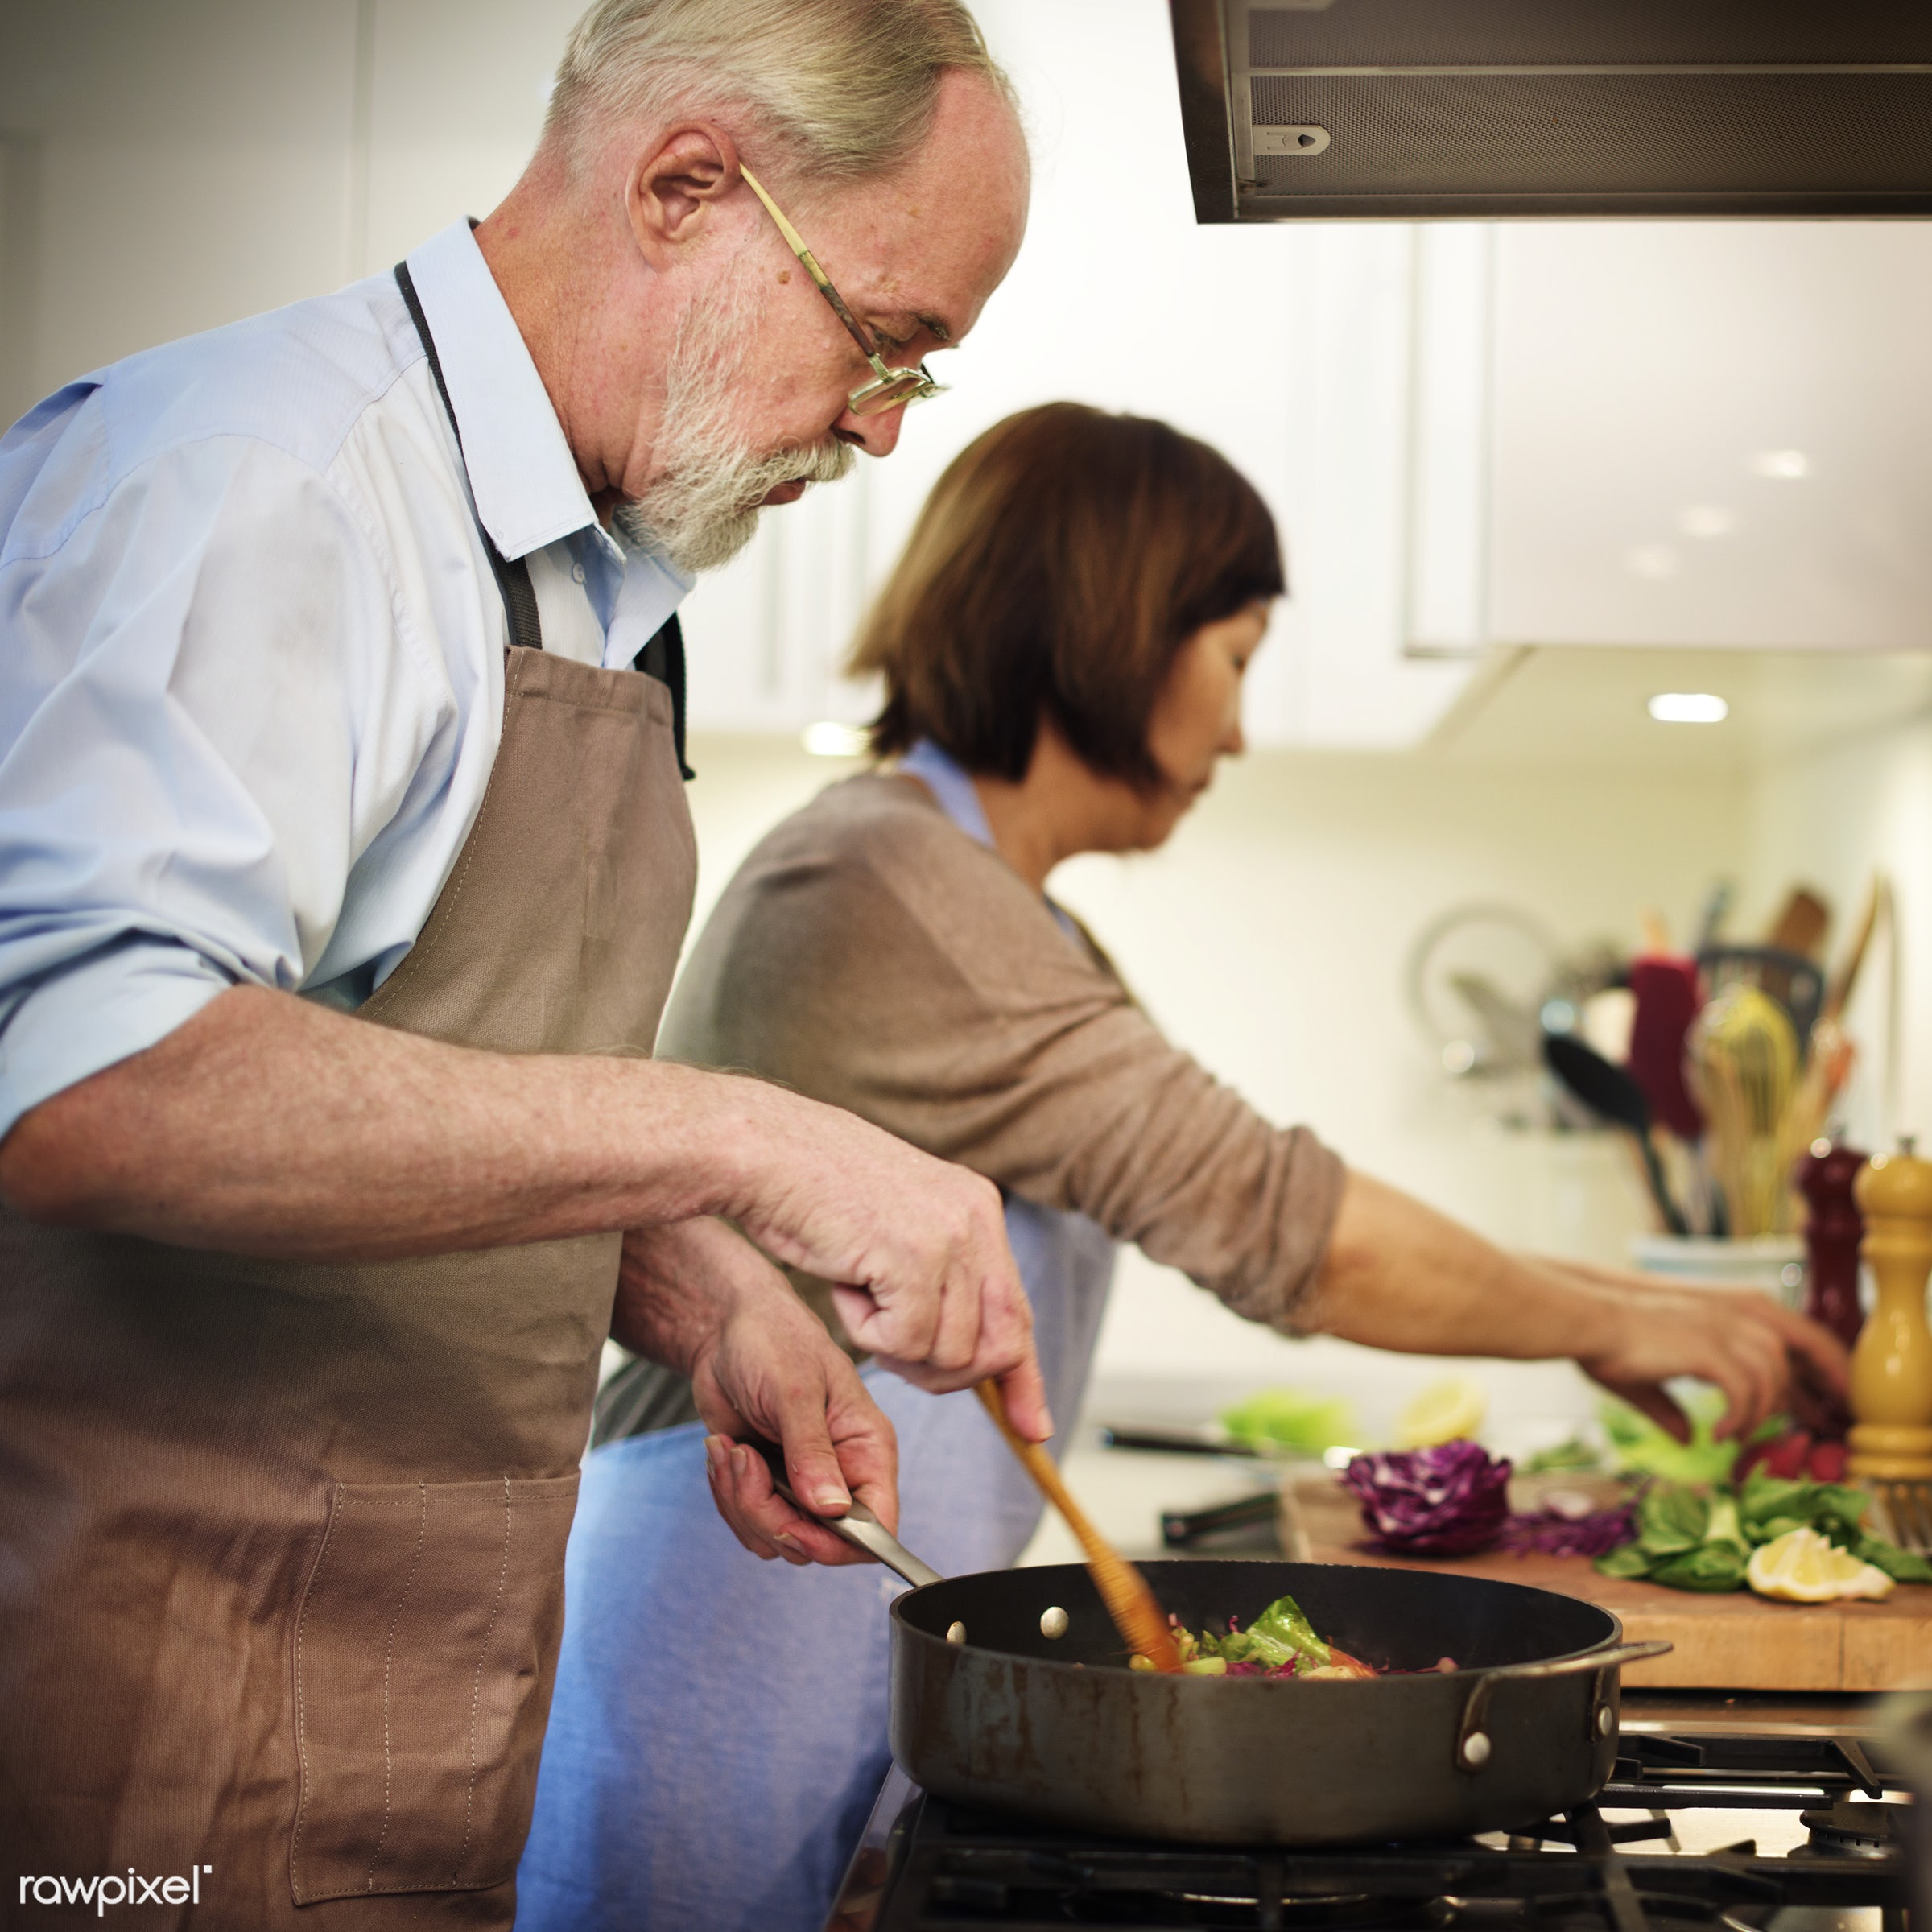 Senior couple cooking together in the kitchen - food, home, mature, cooking, couple, frying, housework, kitchen, old, senior...